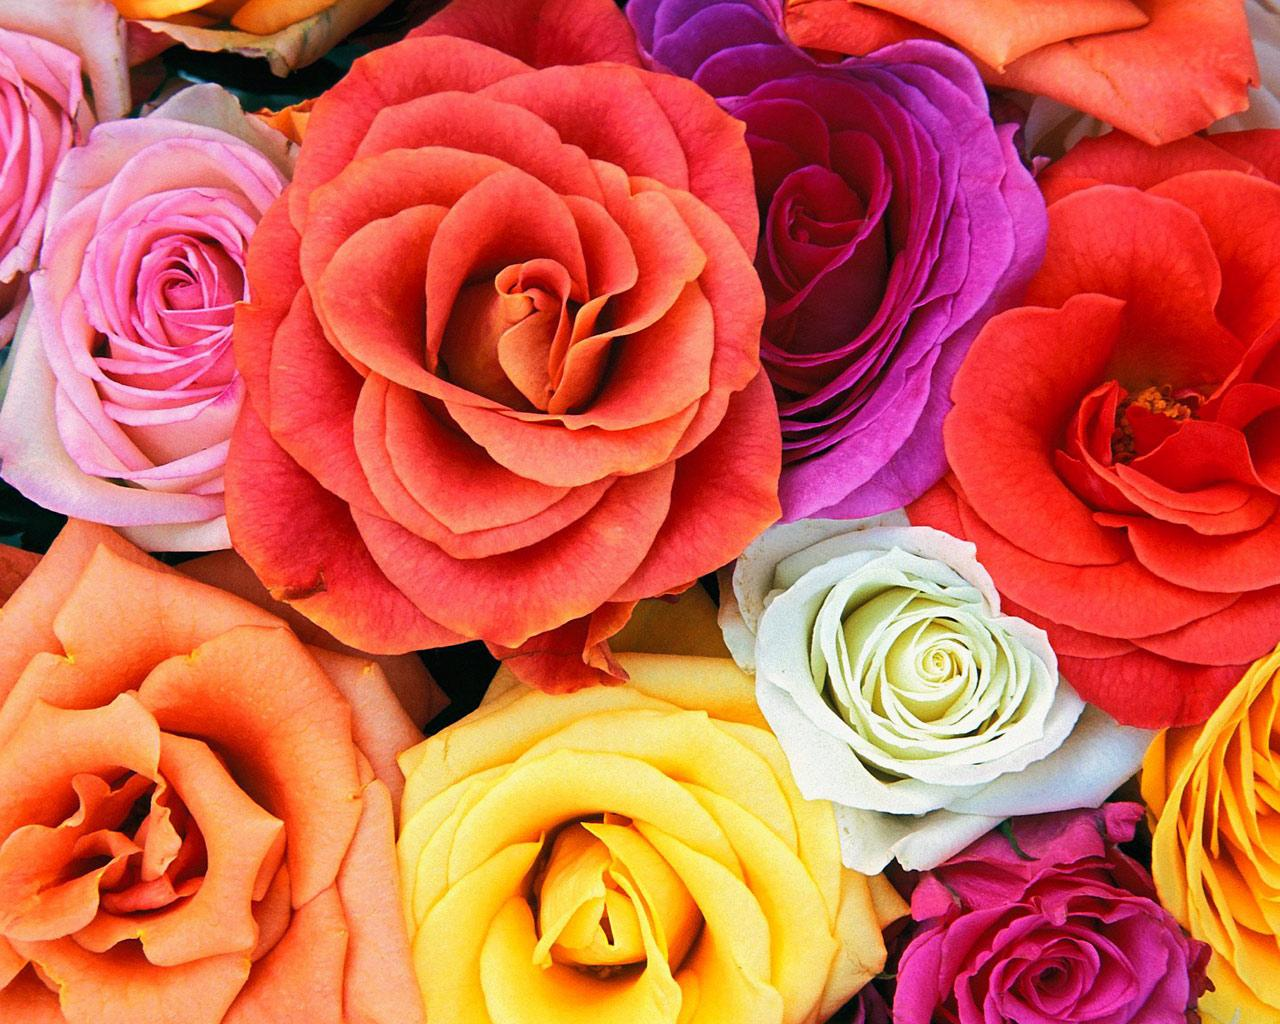 Love Blooms Roses, Bunch Of Flowers Wallpaper